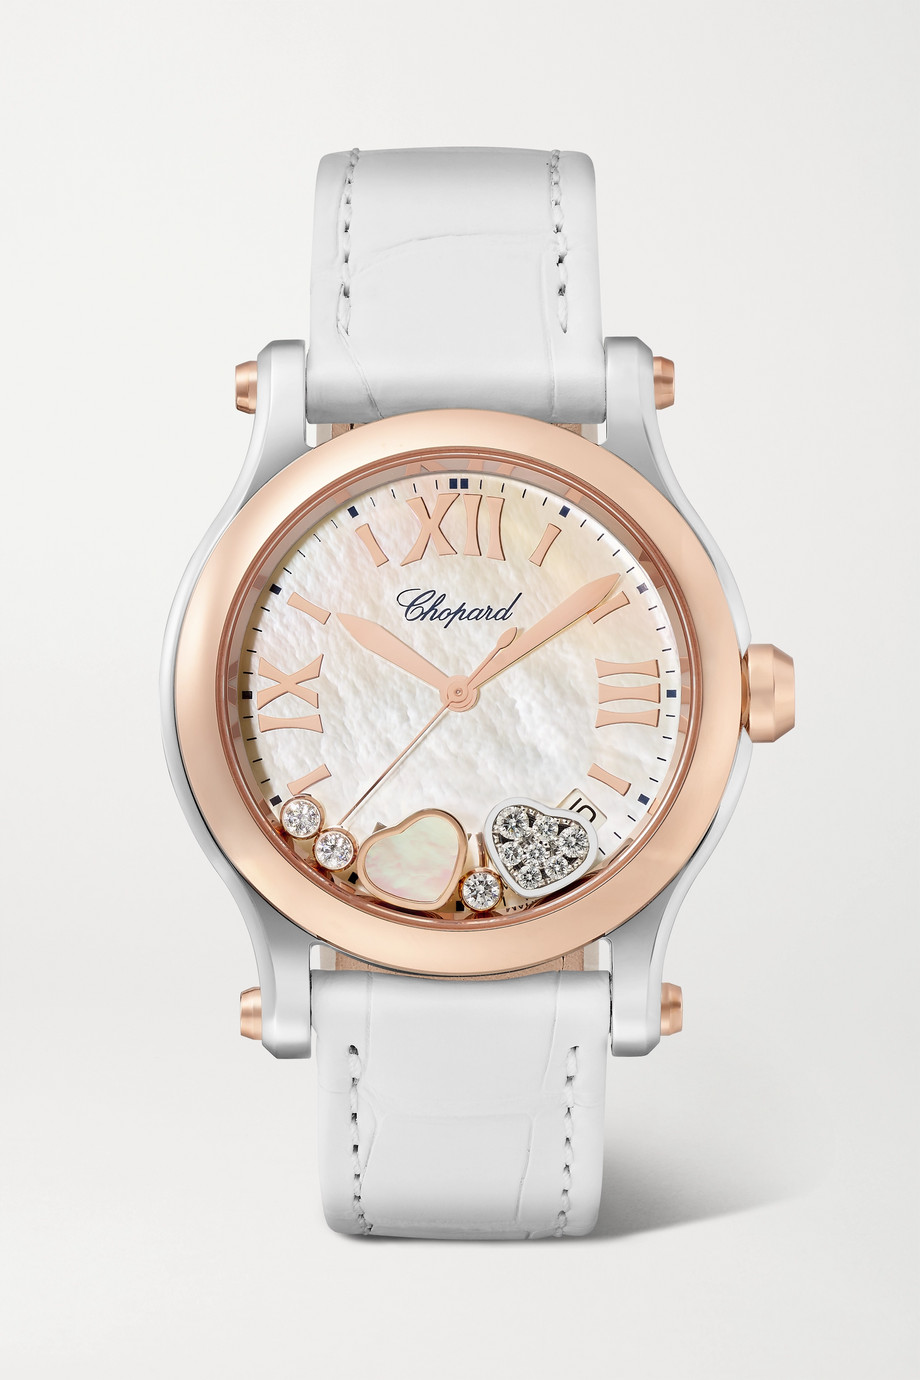 Chopard Montre en or rose 18 carats, acier inoxydable, nacre et diamants à bracelet en alligator Happy Sport Automatique 36 mm